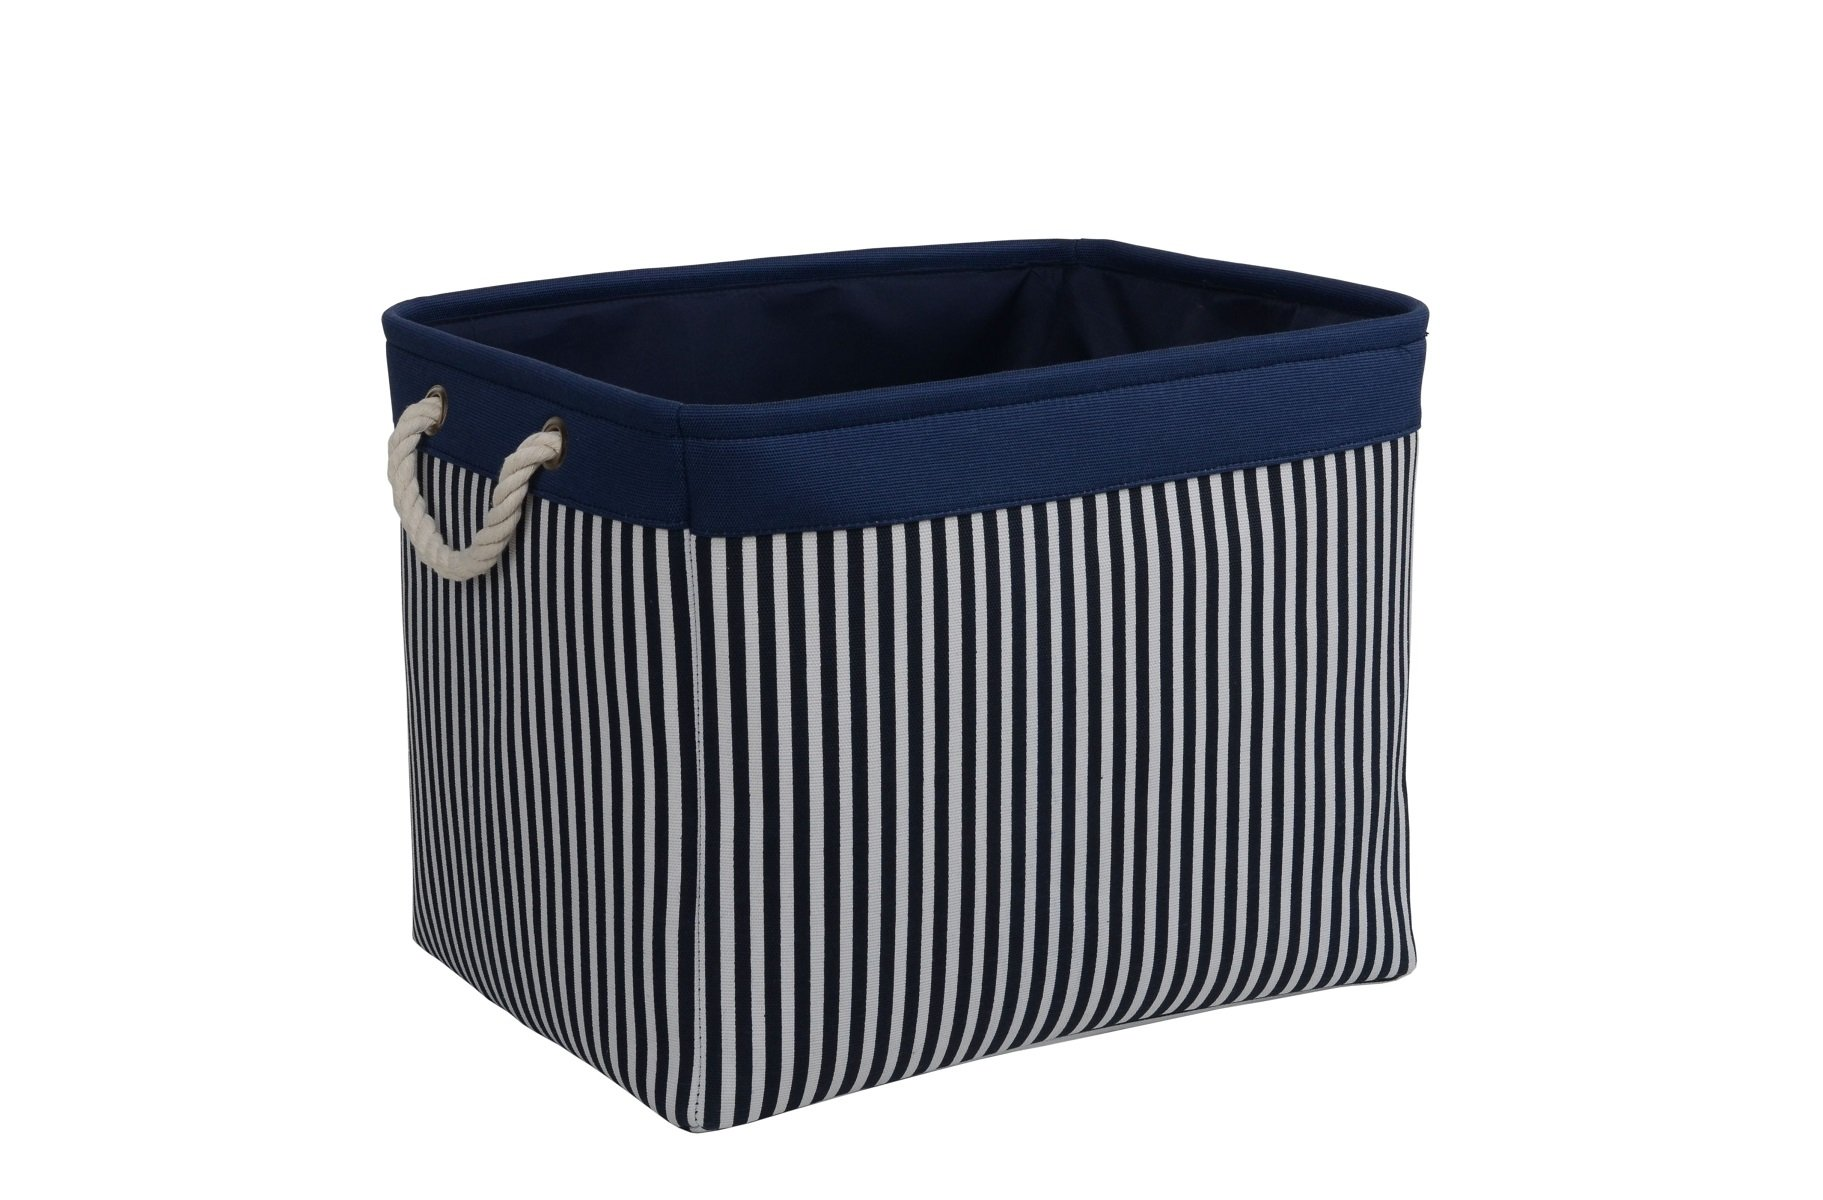 TcaFmac Large Navy Basket Decorative Fabric Storage Containers, Canvas  Storage Bins Nautical Baskets For Shelves, Gifts Basket Empty 16(L) X 12(W)  X 12(H) ...